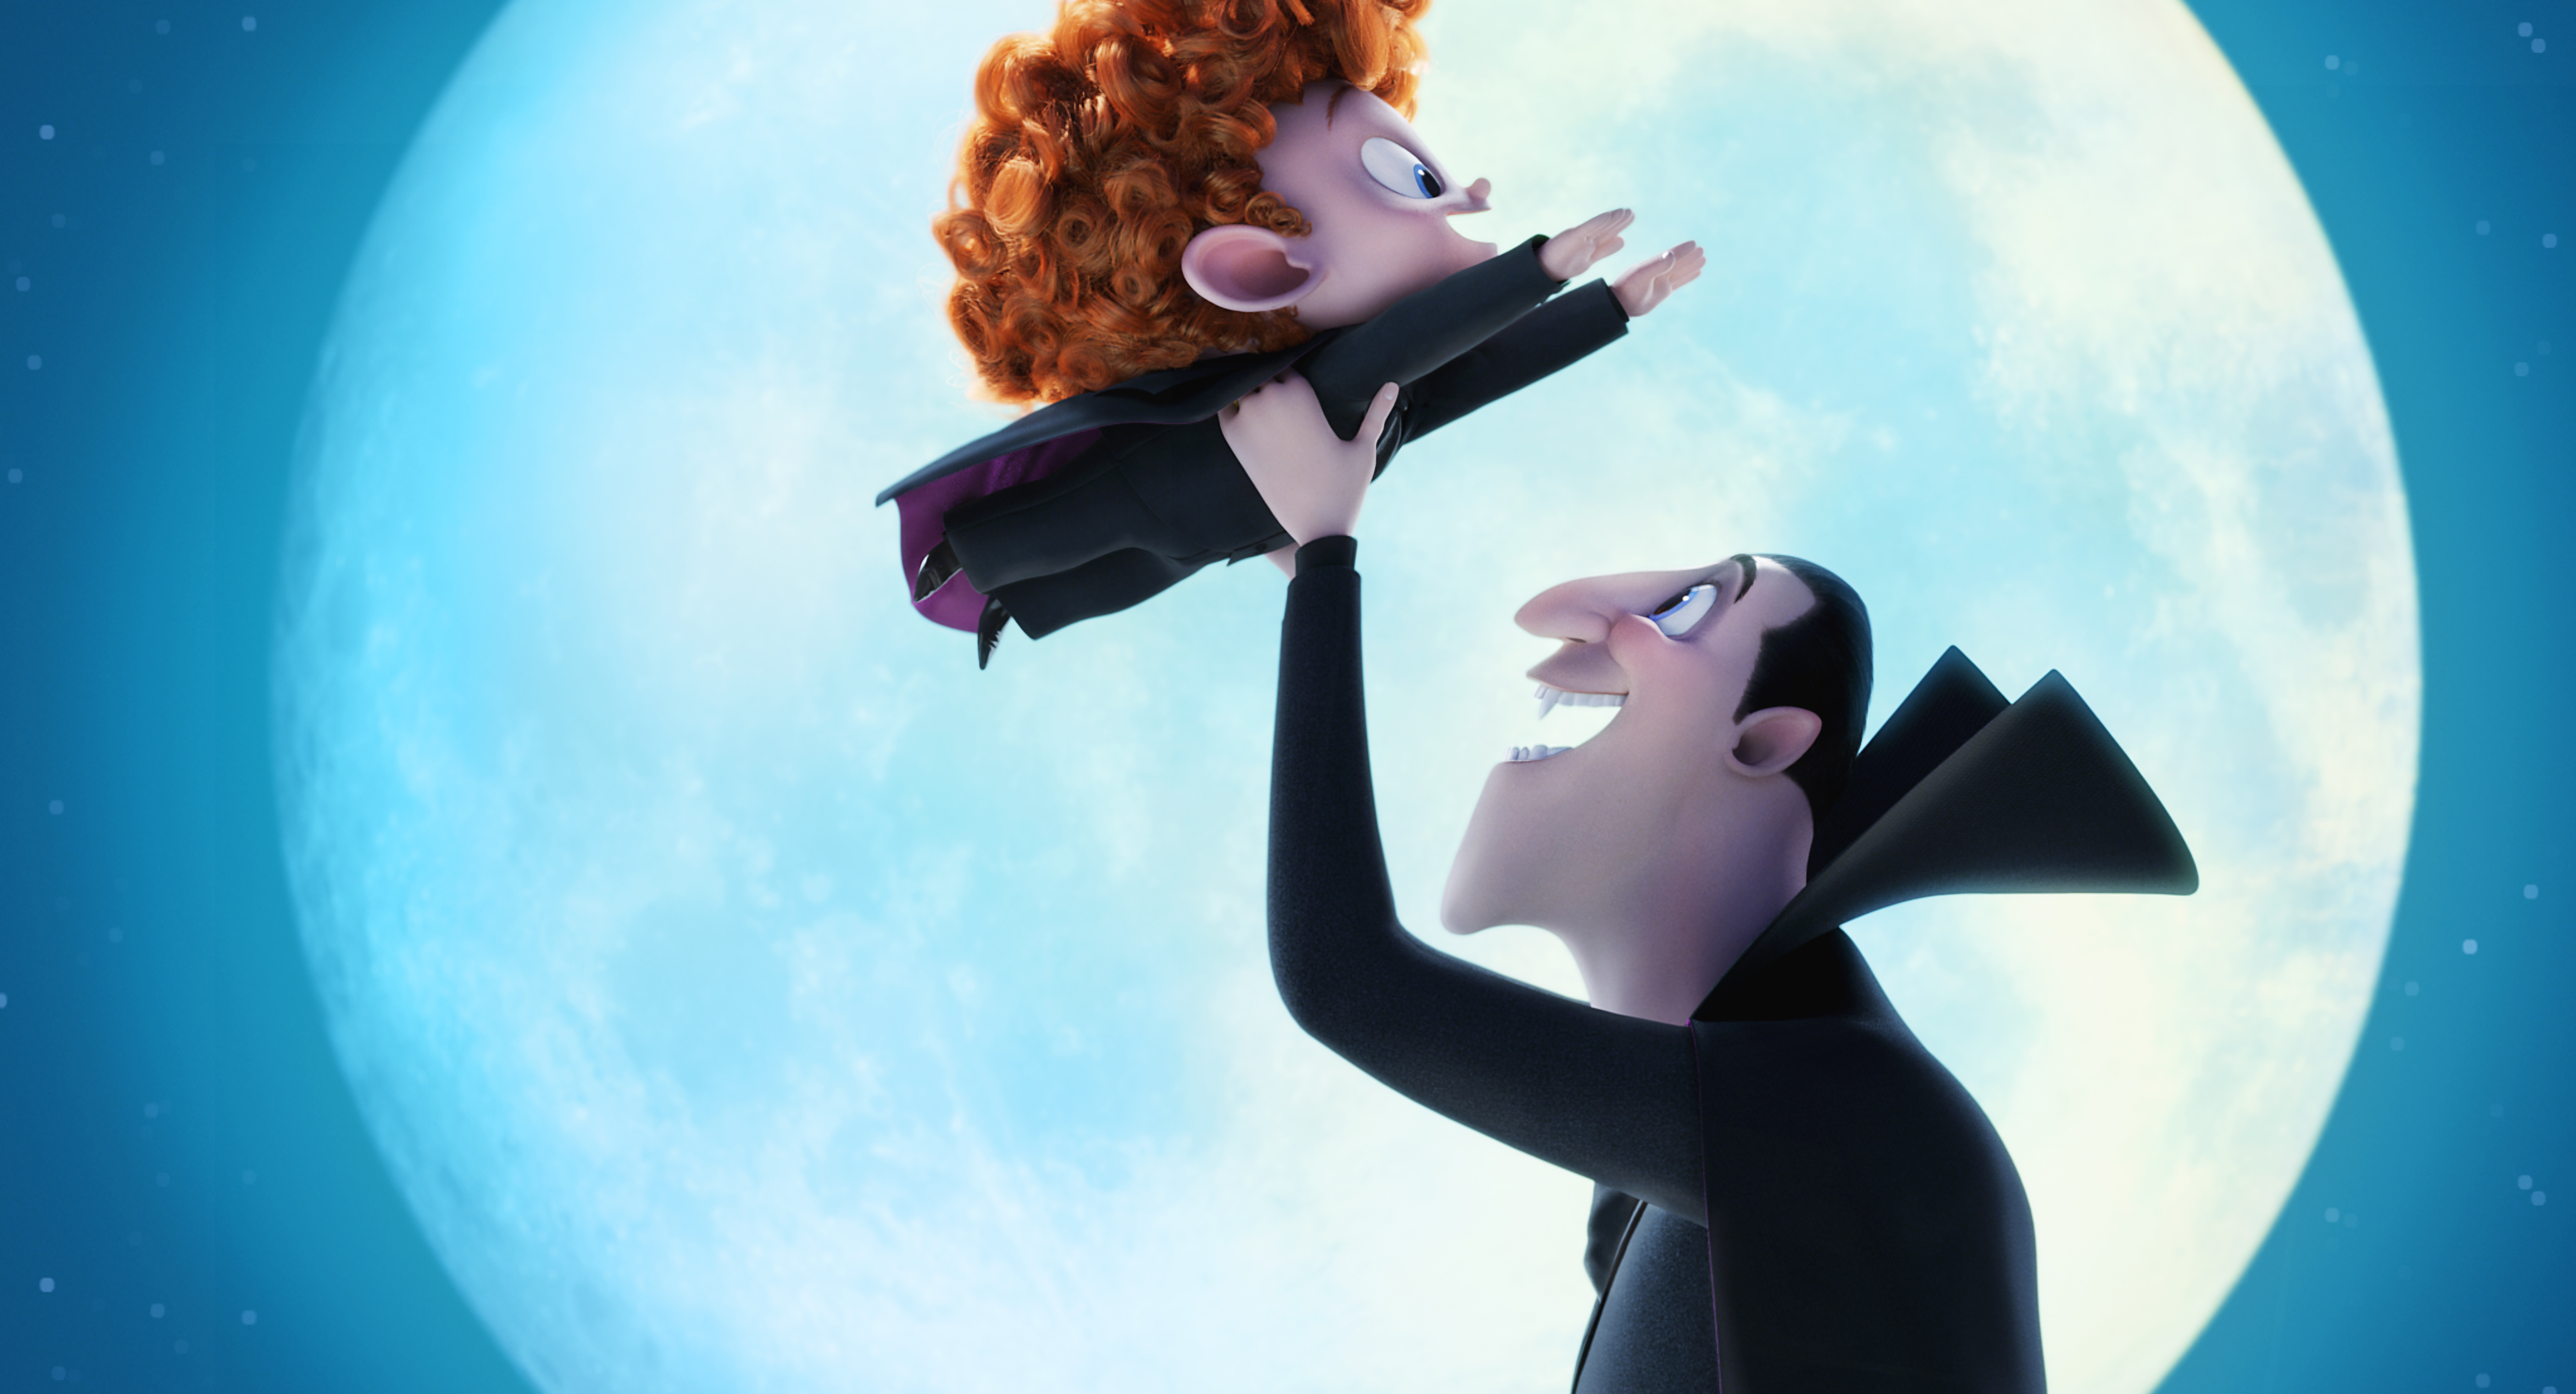 Hotel Transylvania 4 Release Date Confirmed at Sony Animation | Collider